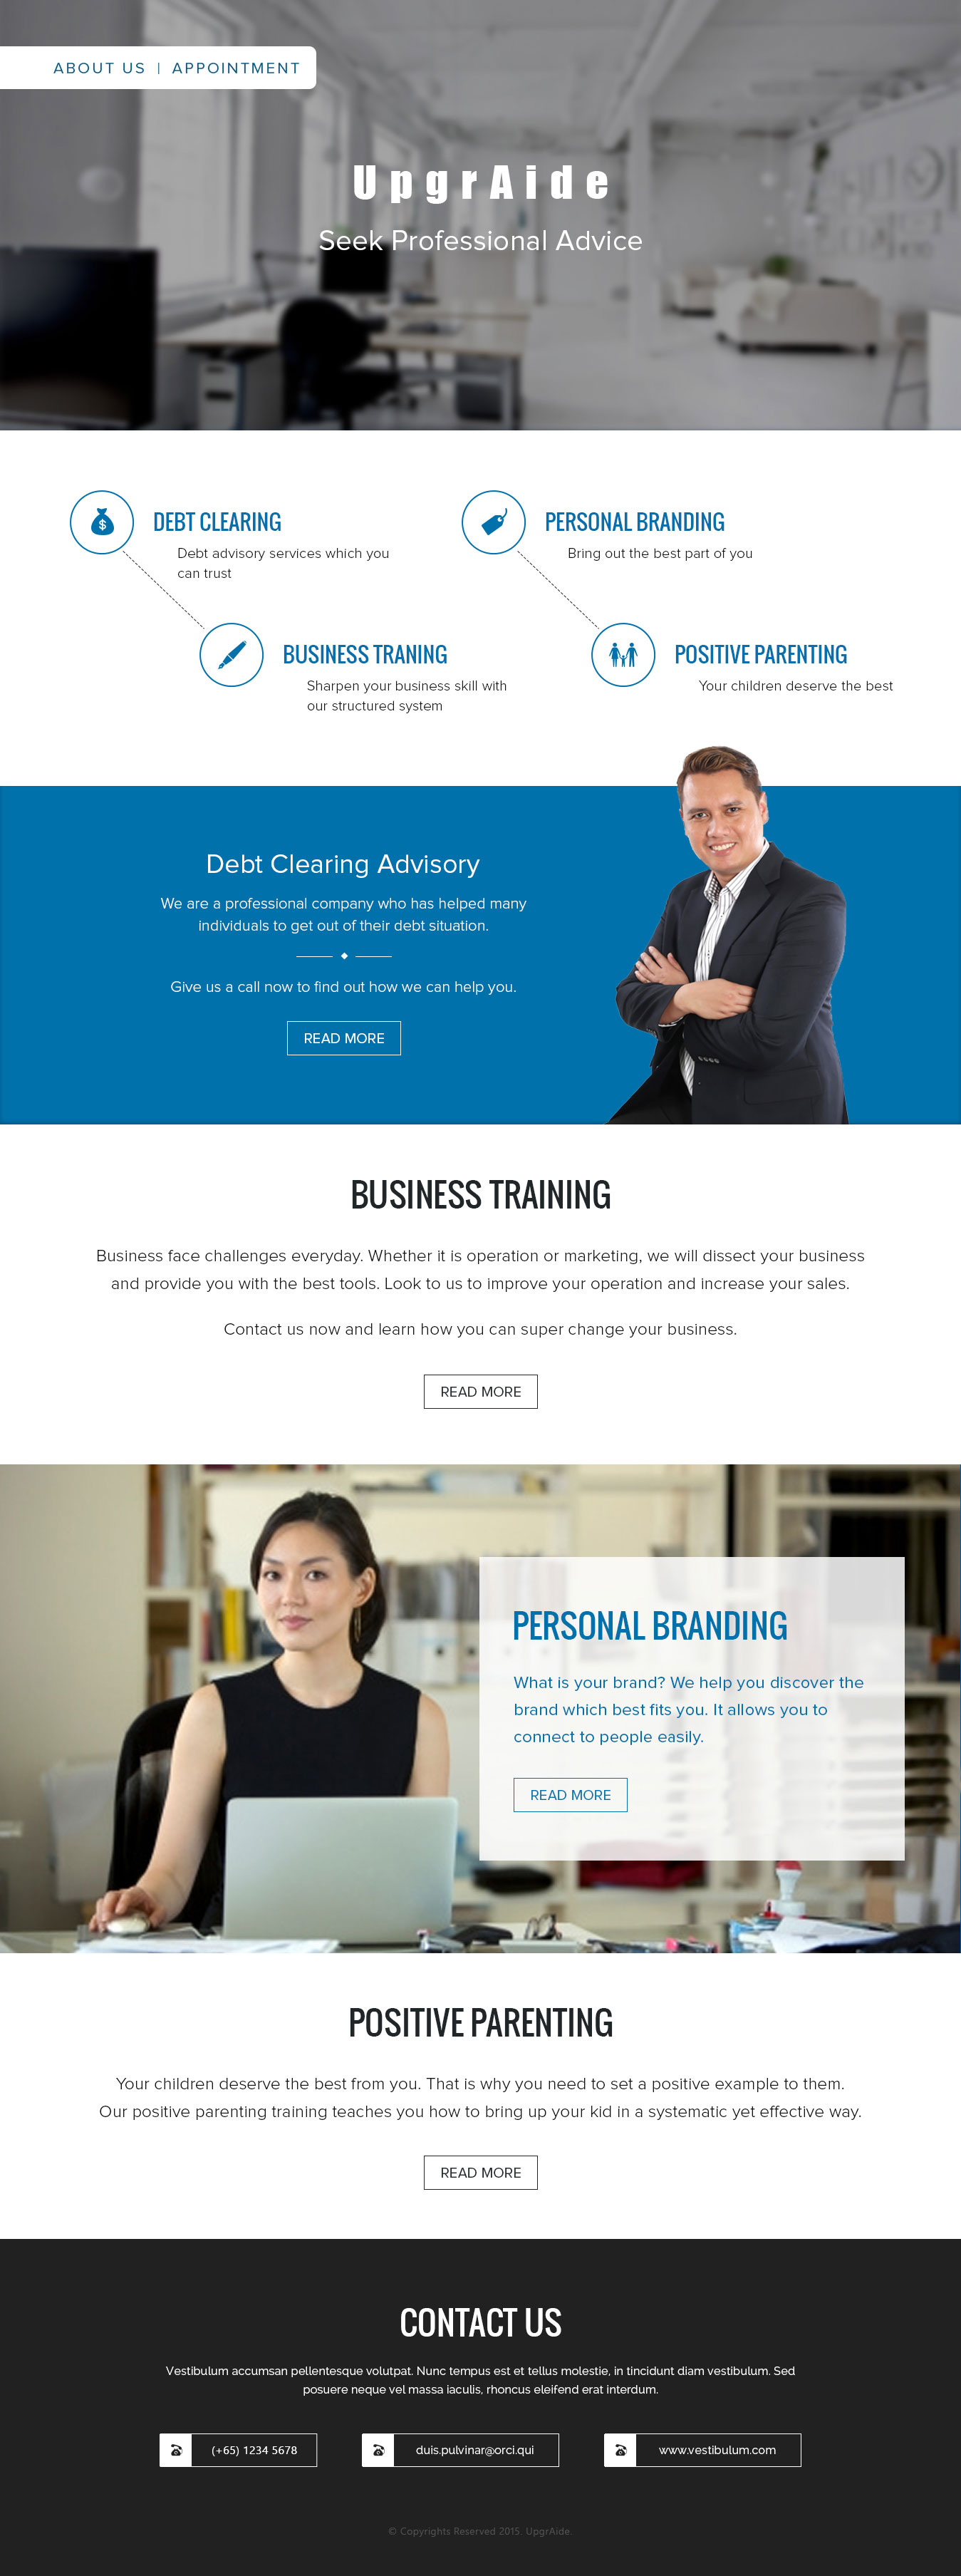 WordPress CMS Website for Business Training Company